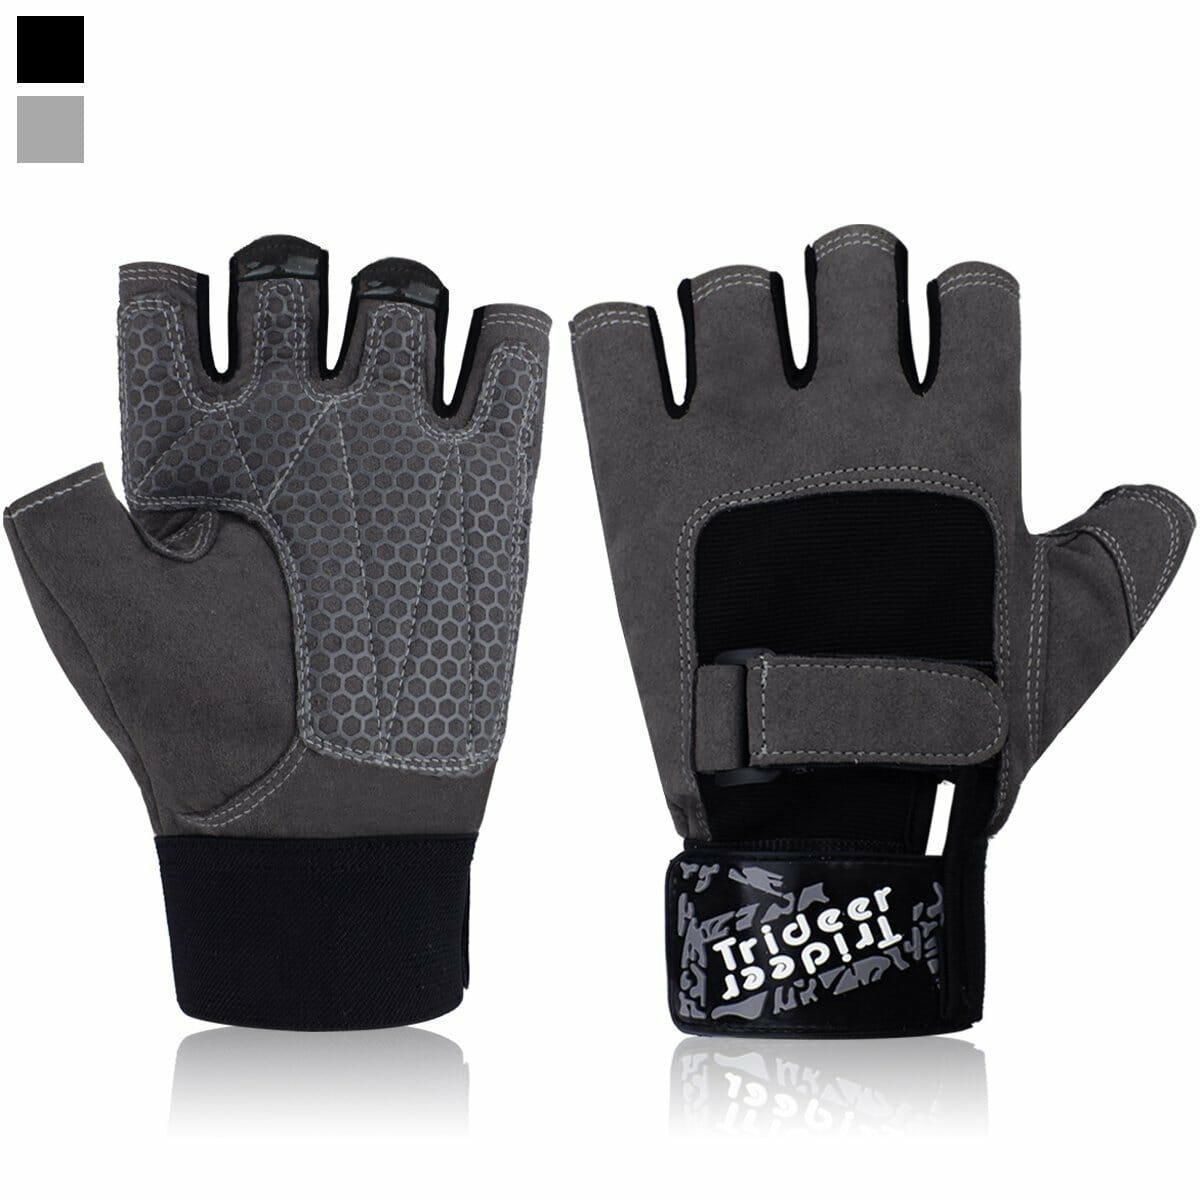 Dam Pro Gel Weight Lifting Gloves Gym Body Building Gloves: Barehand Gloves: Best CrossFit Gloves To Prevent Hands